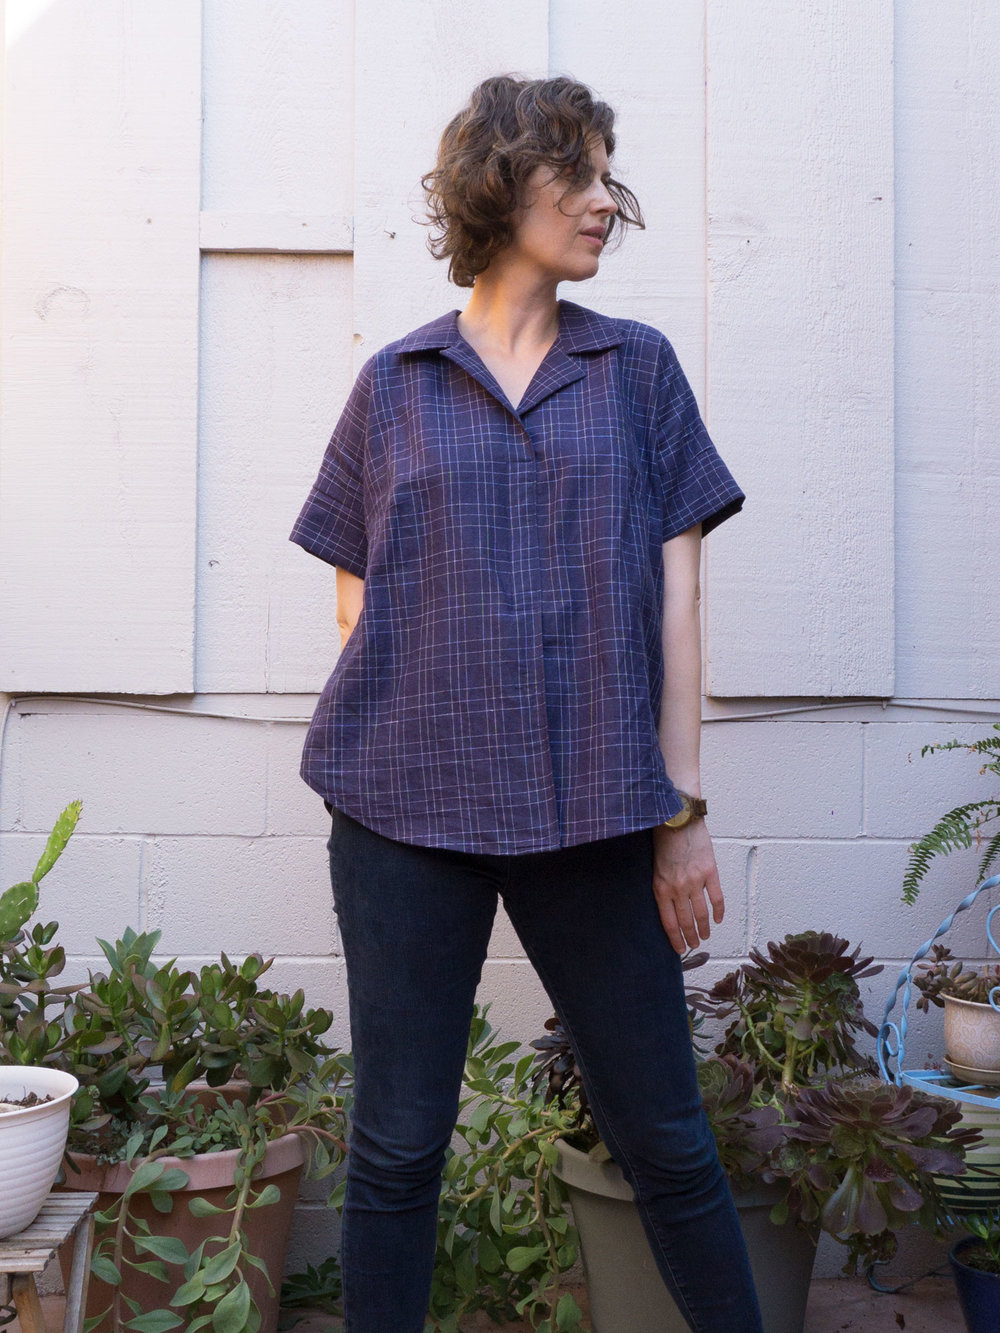 DIY Easy Collared Shirt – Review of the Willamette Shirt by Hey June Patterns | Sew DIY